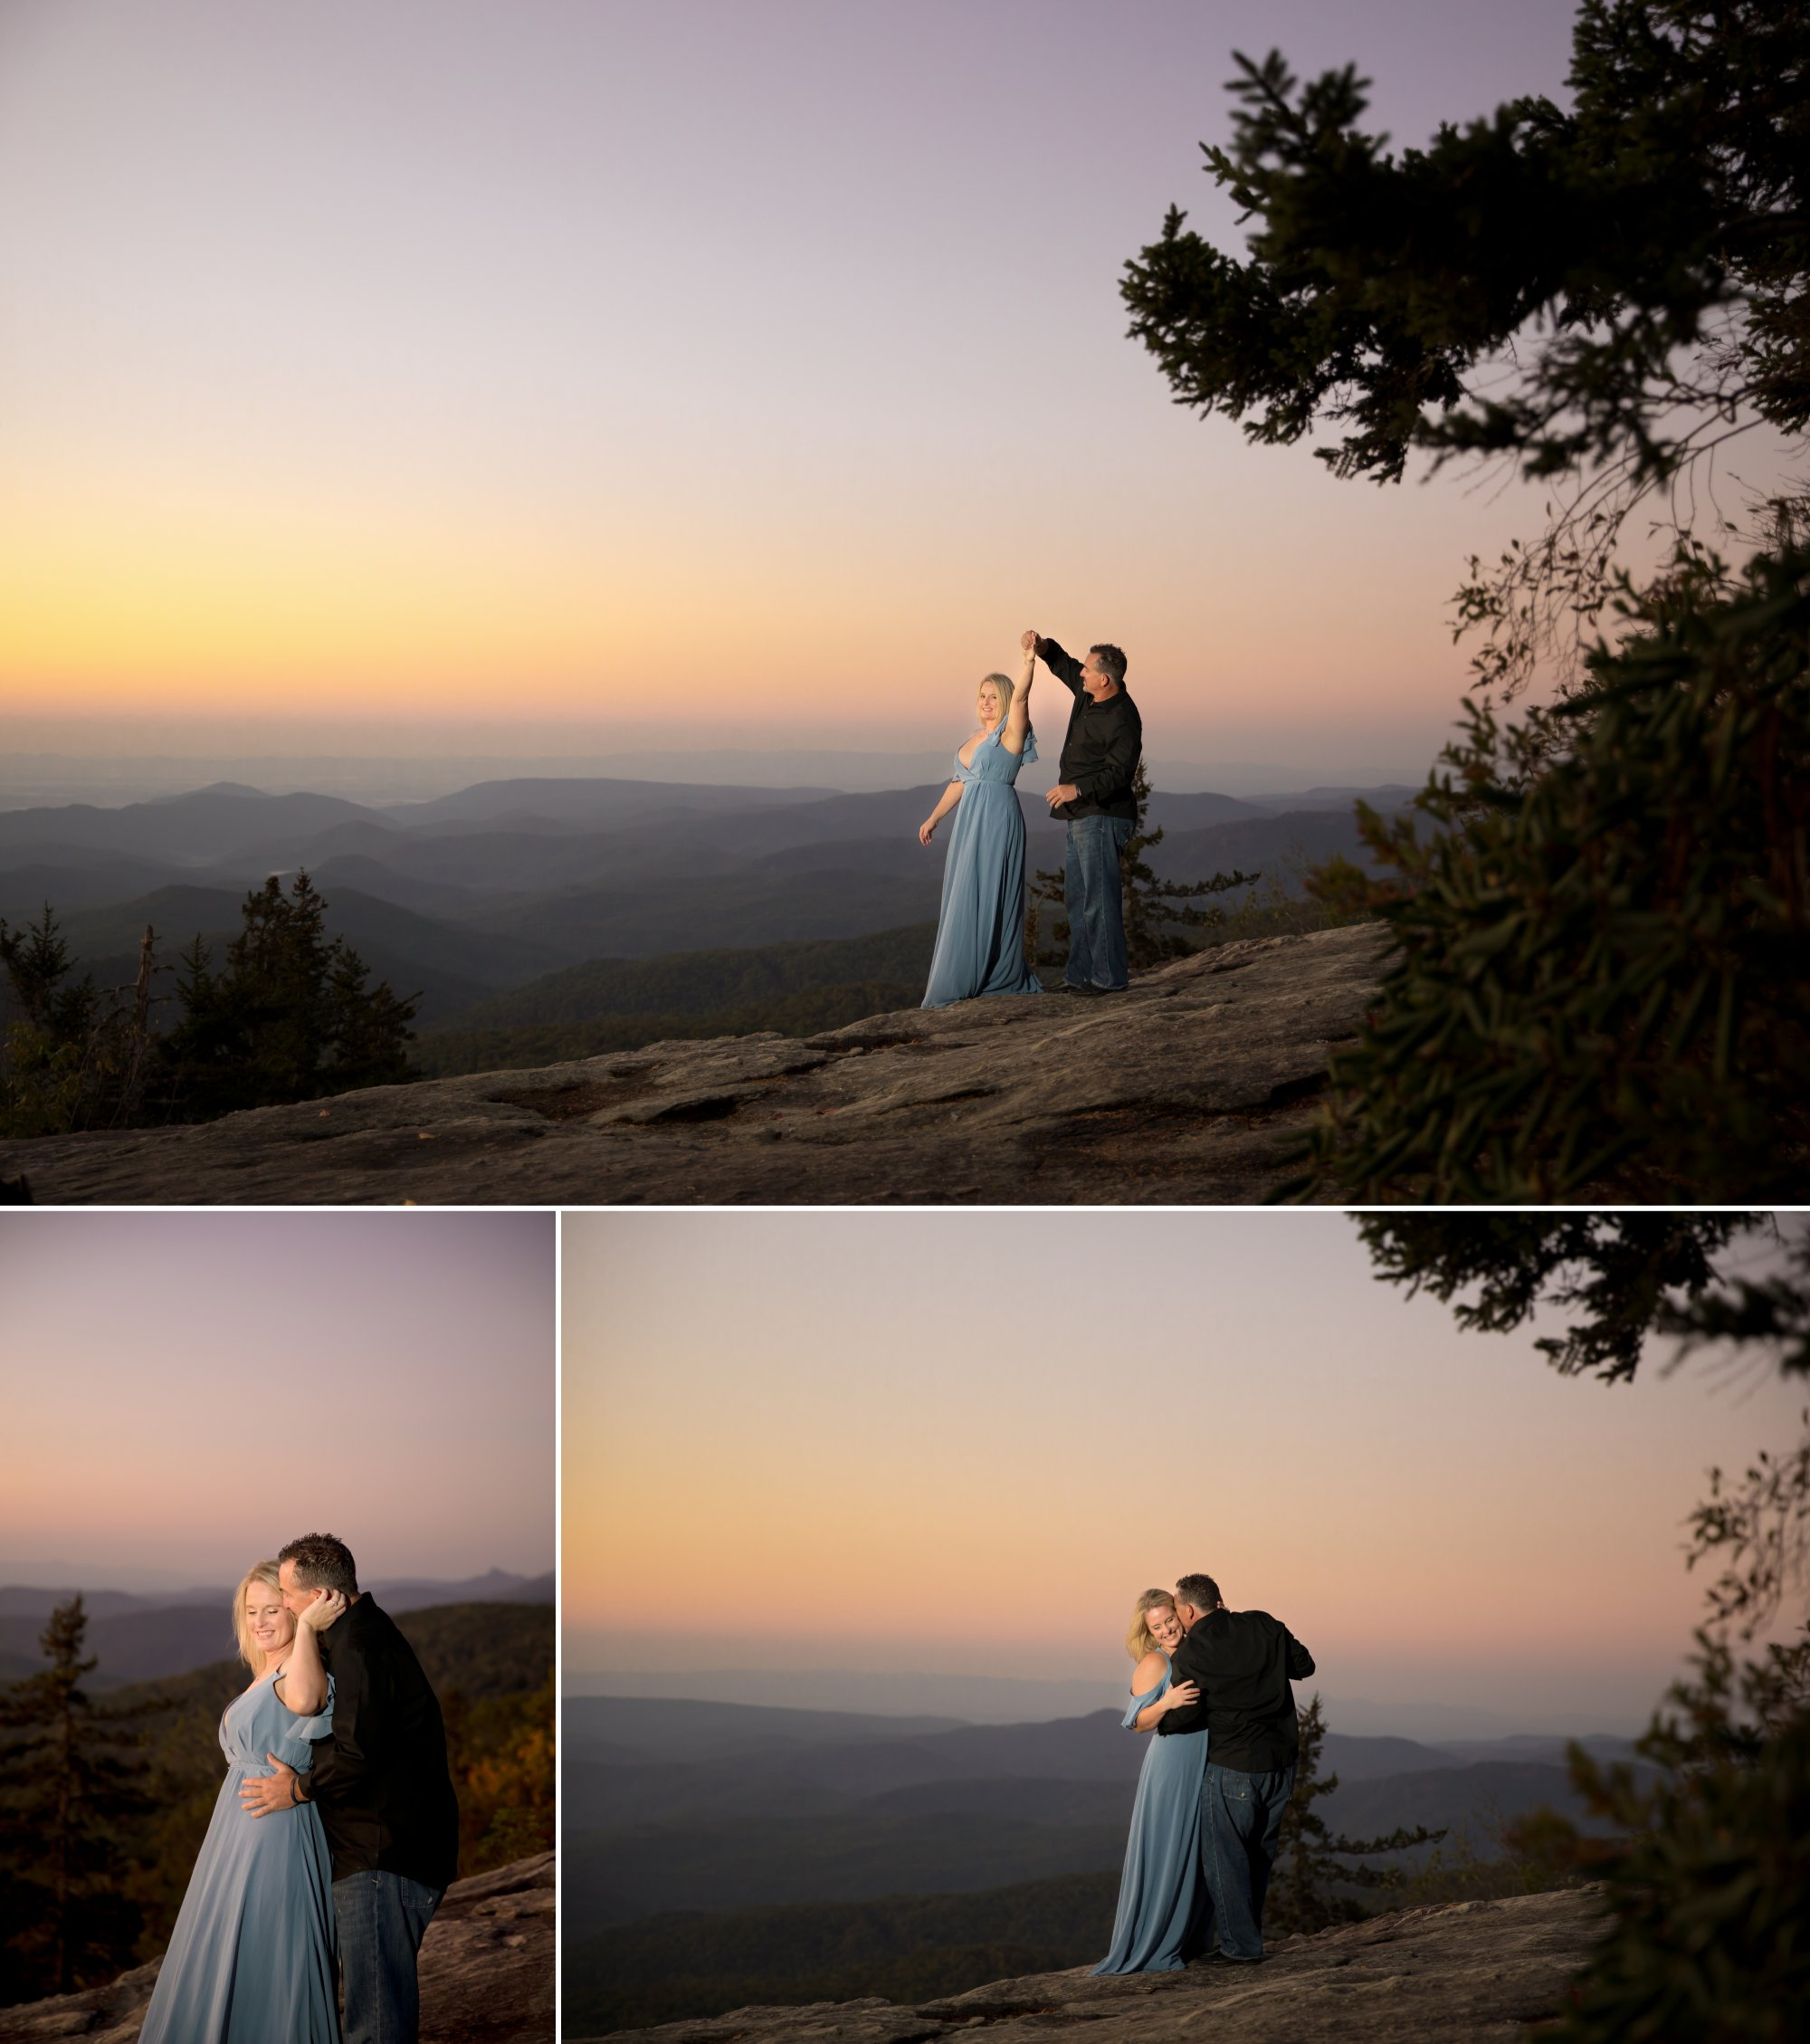 Shardae and Dan's Blue Ridge Parkway Engagement Portraits